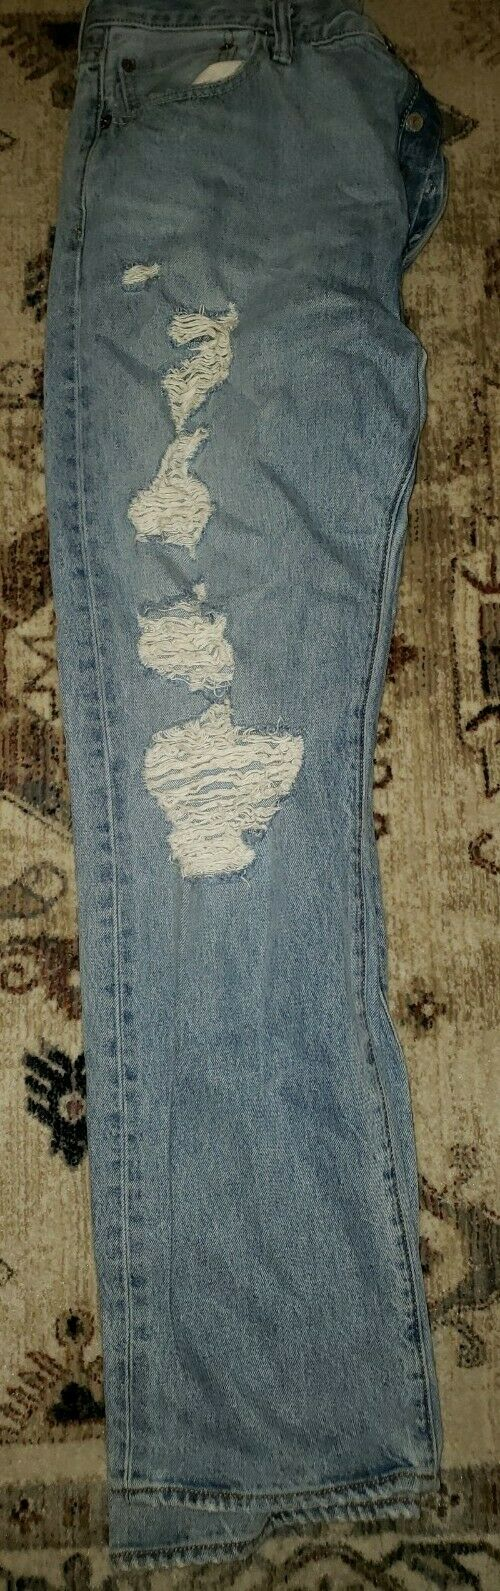 Levis 501's Jeans Distressed 36x32 Button Fly - image 9